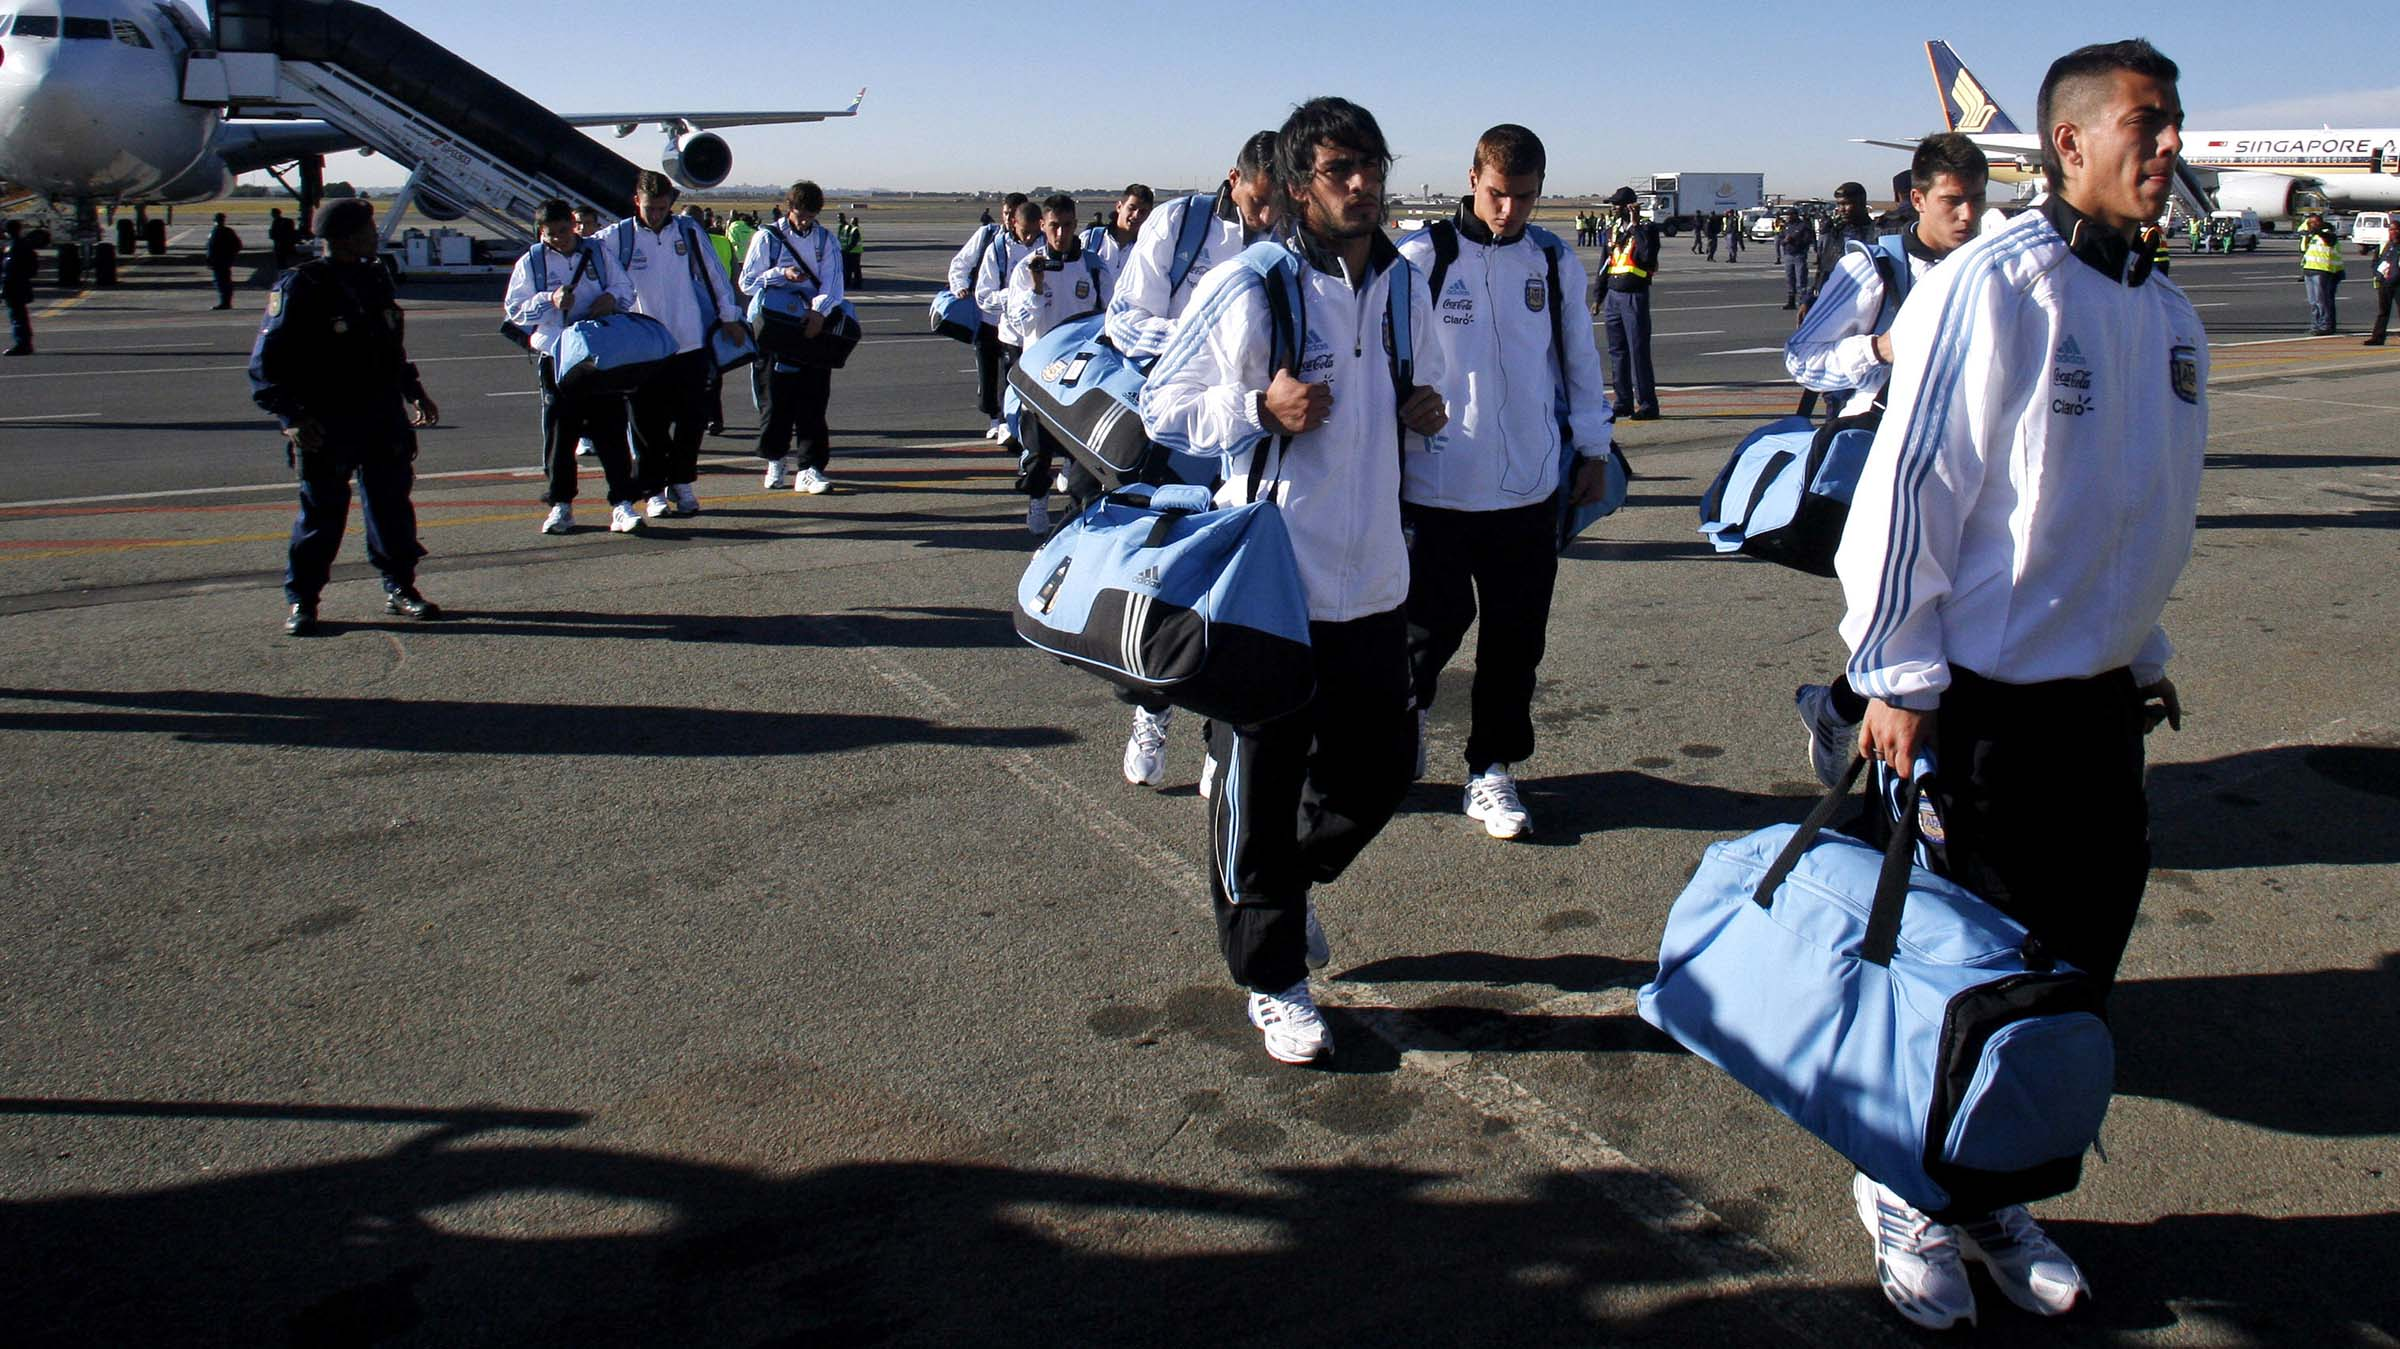 Argentina's soccer team arrive at the OR Tambo International Airport in Johannesburg, Saturday May 29, 2010. Argentina arrived for the upcoming World Cup, which gets underway on June 11,  2010. (AP Photo/Themba Hadebe)